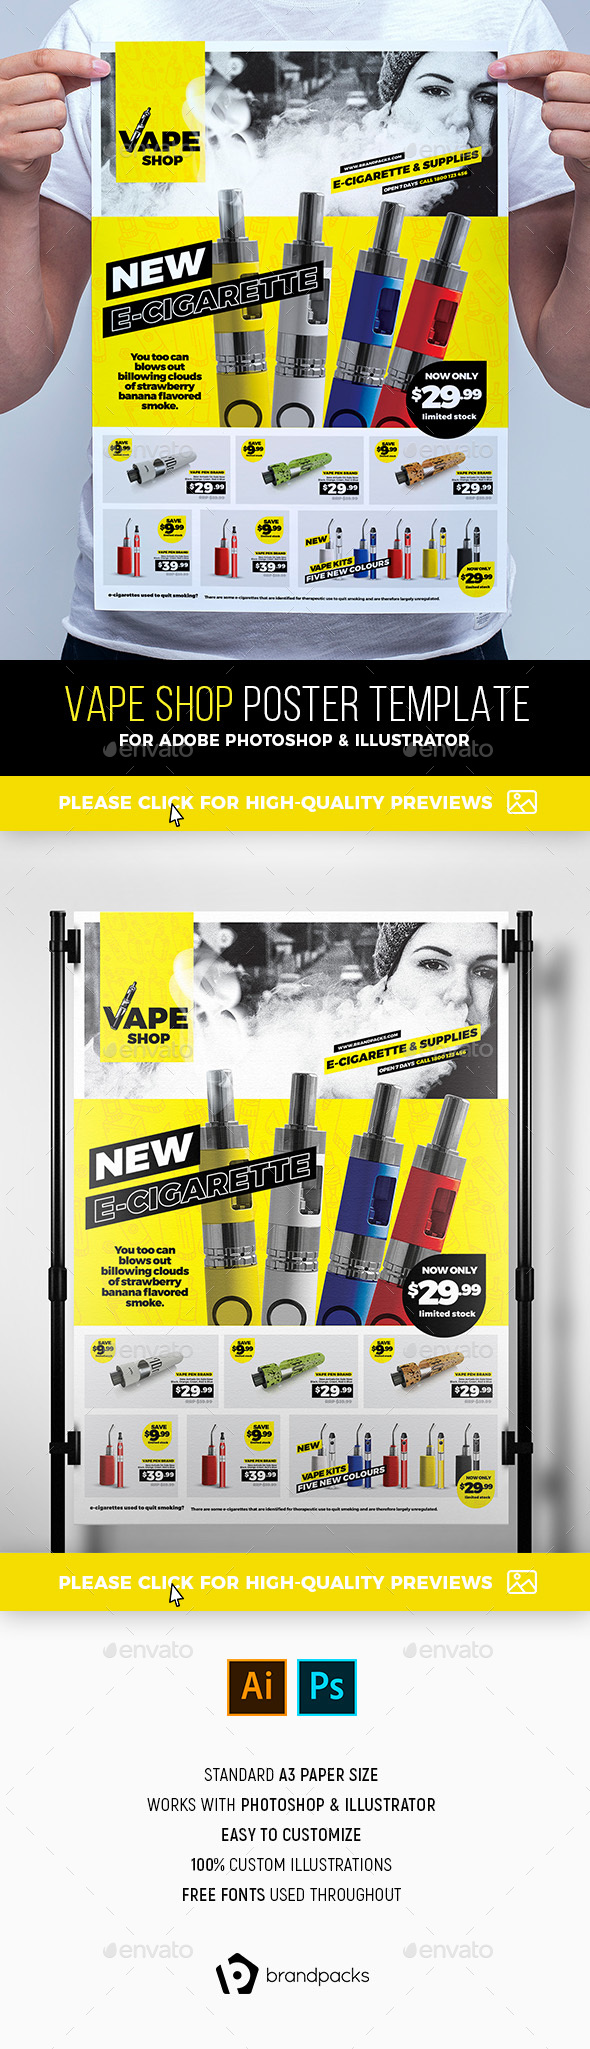 Vape Shop Poster Template - Commerce Flyers